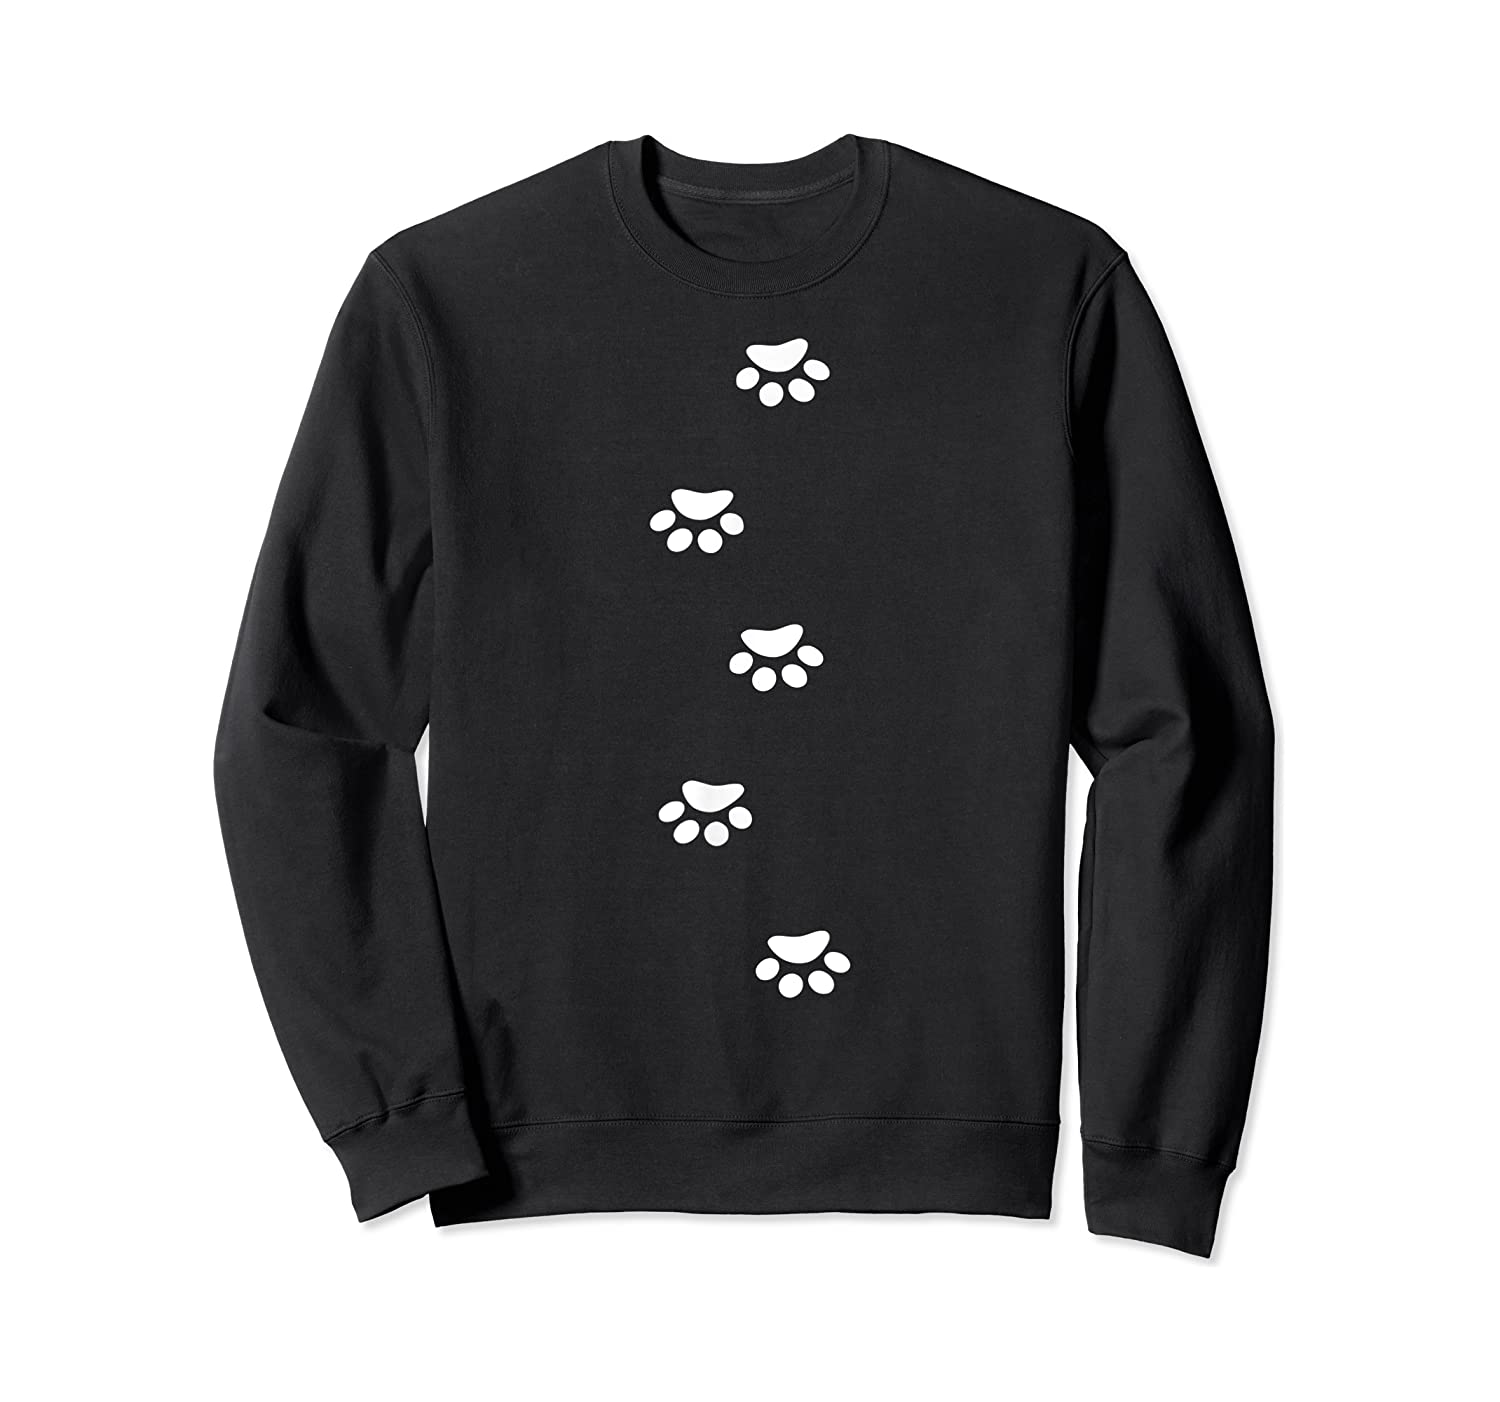 Paw Prints Lovers Dogs Cats Animals T-shirt Crewneck Sweater